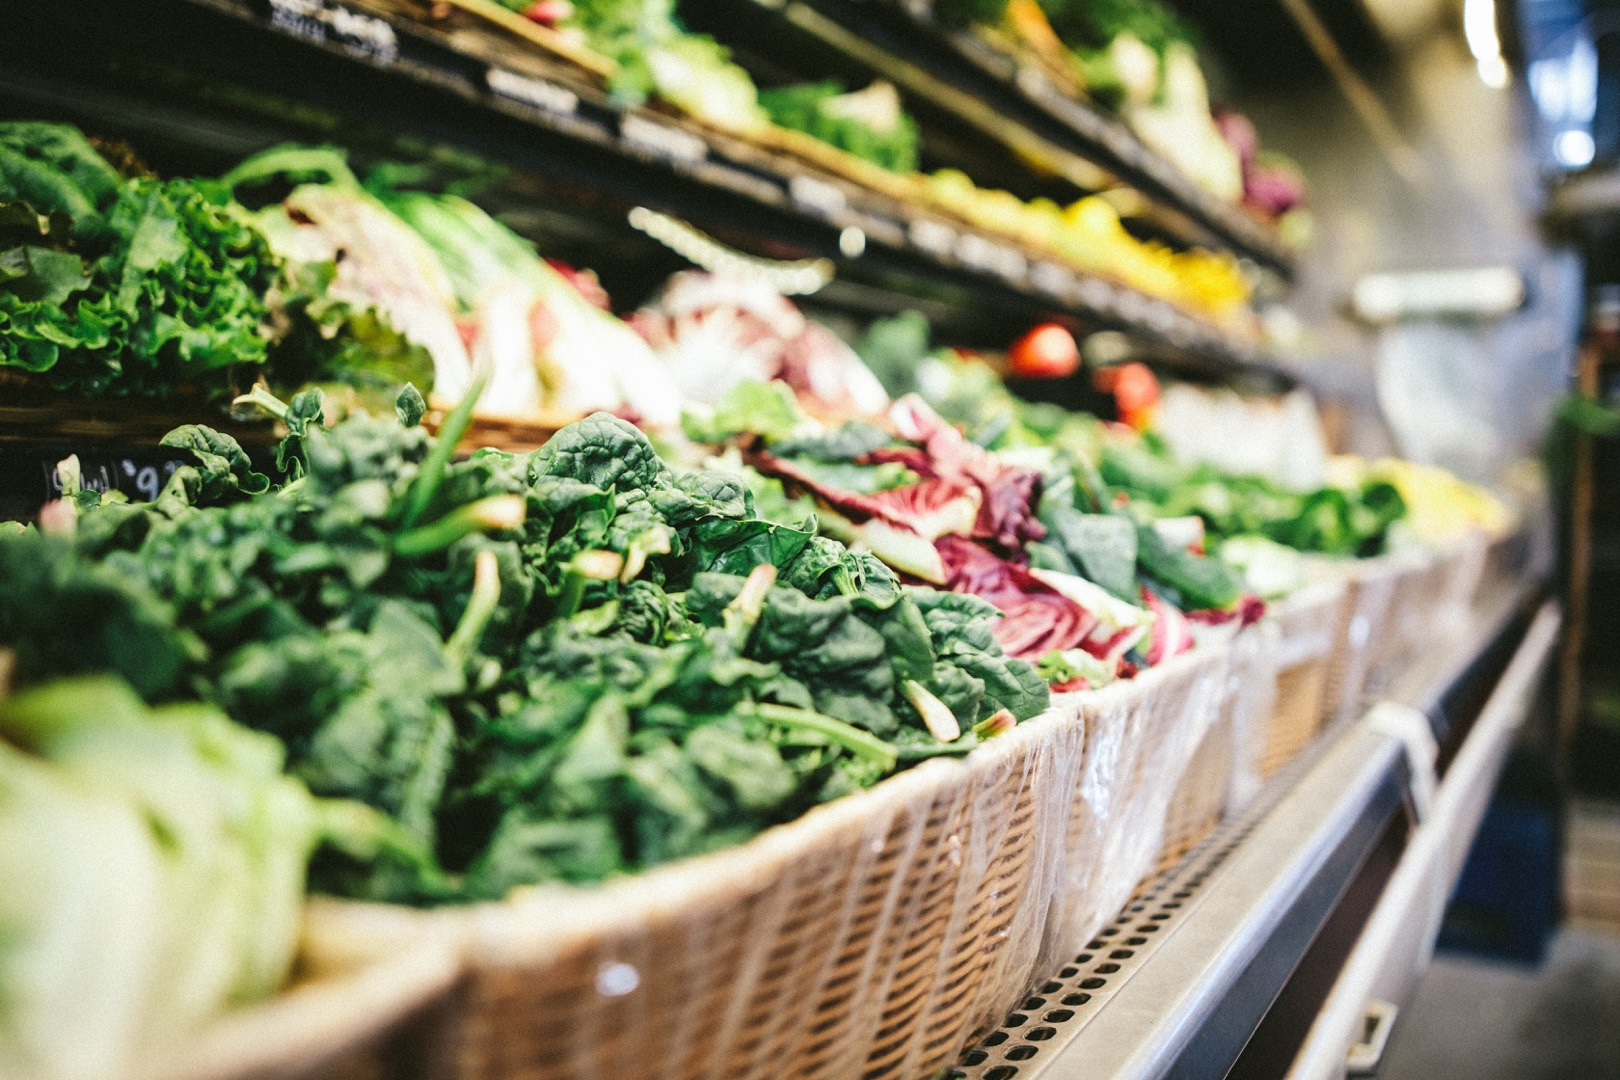 What a Grocery Store Experience Can Teach You About Customer Experience